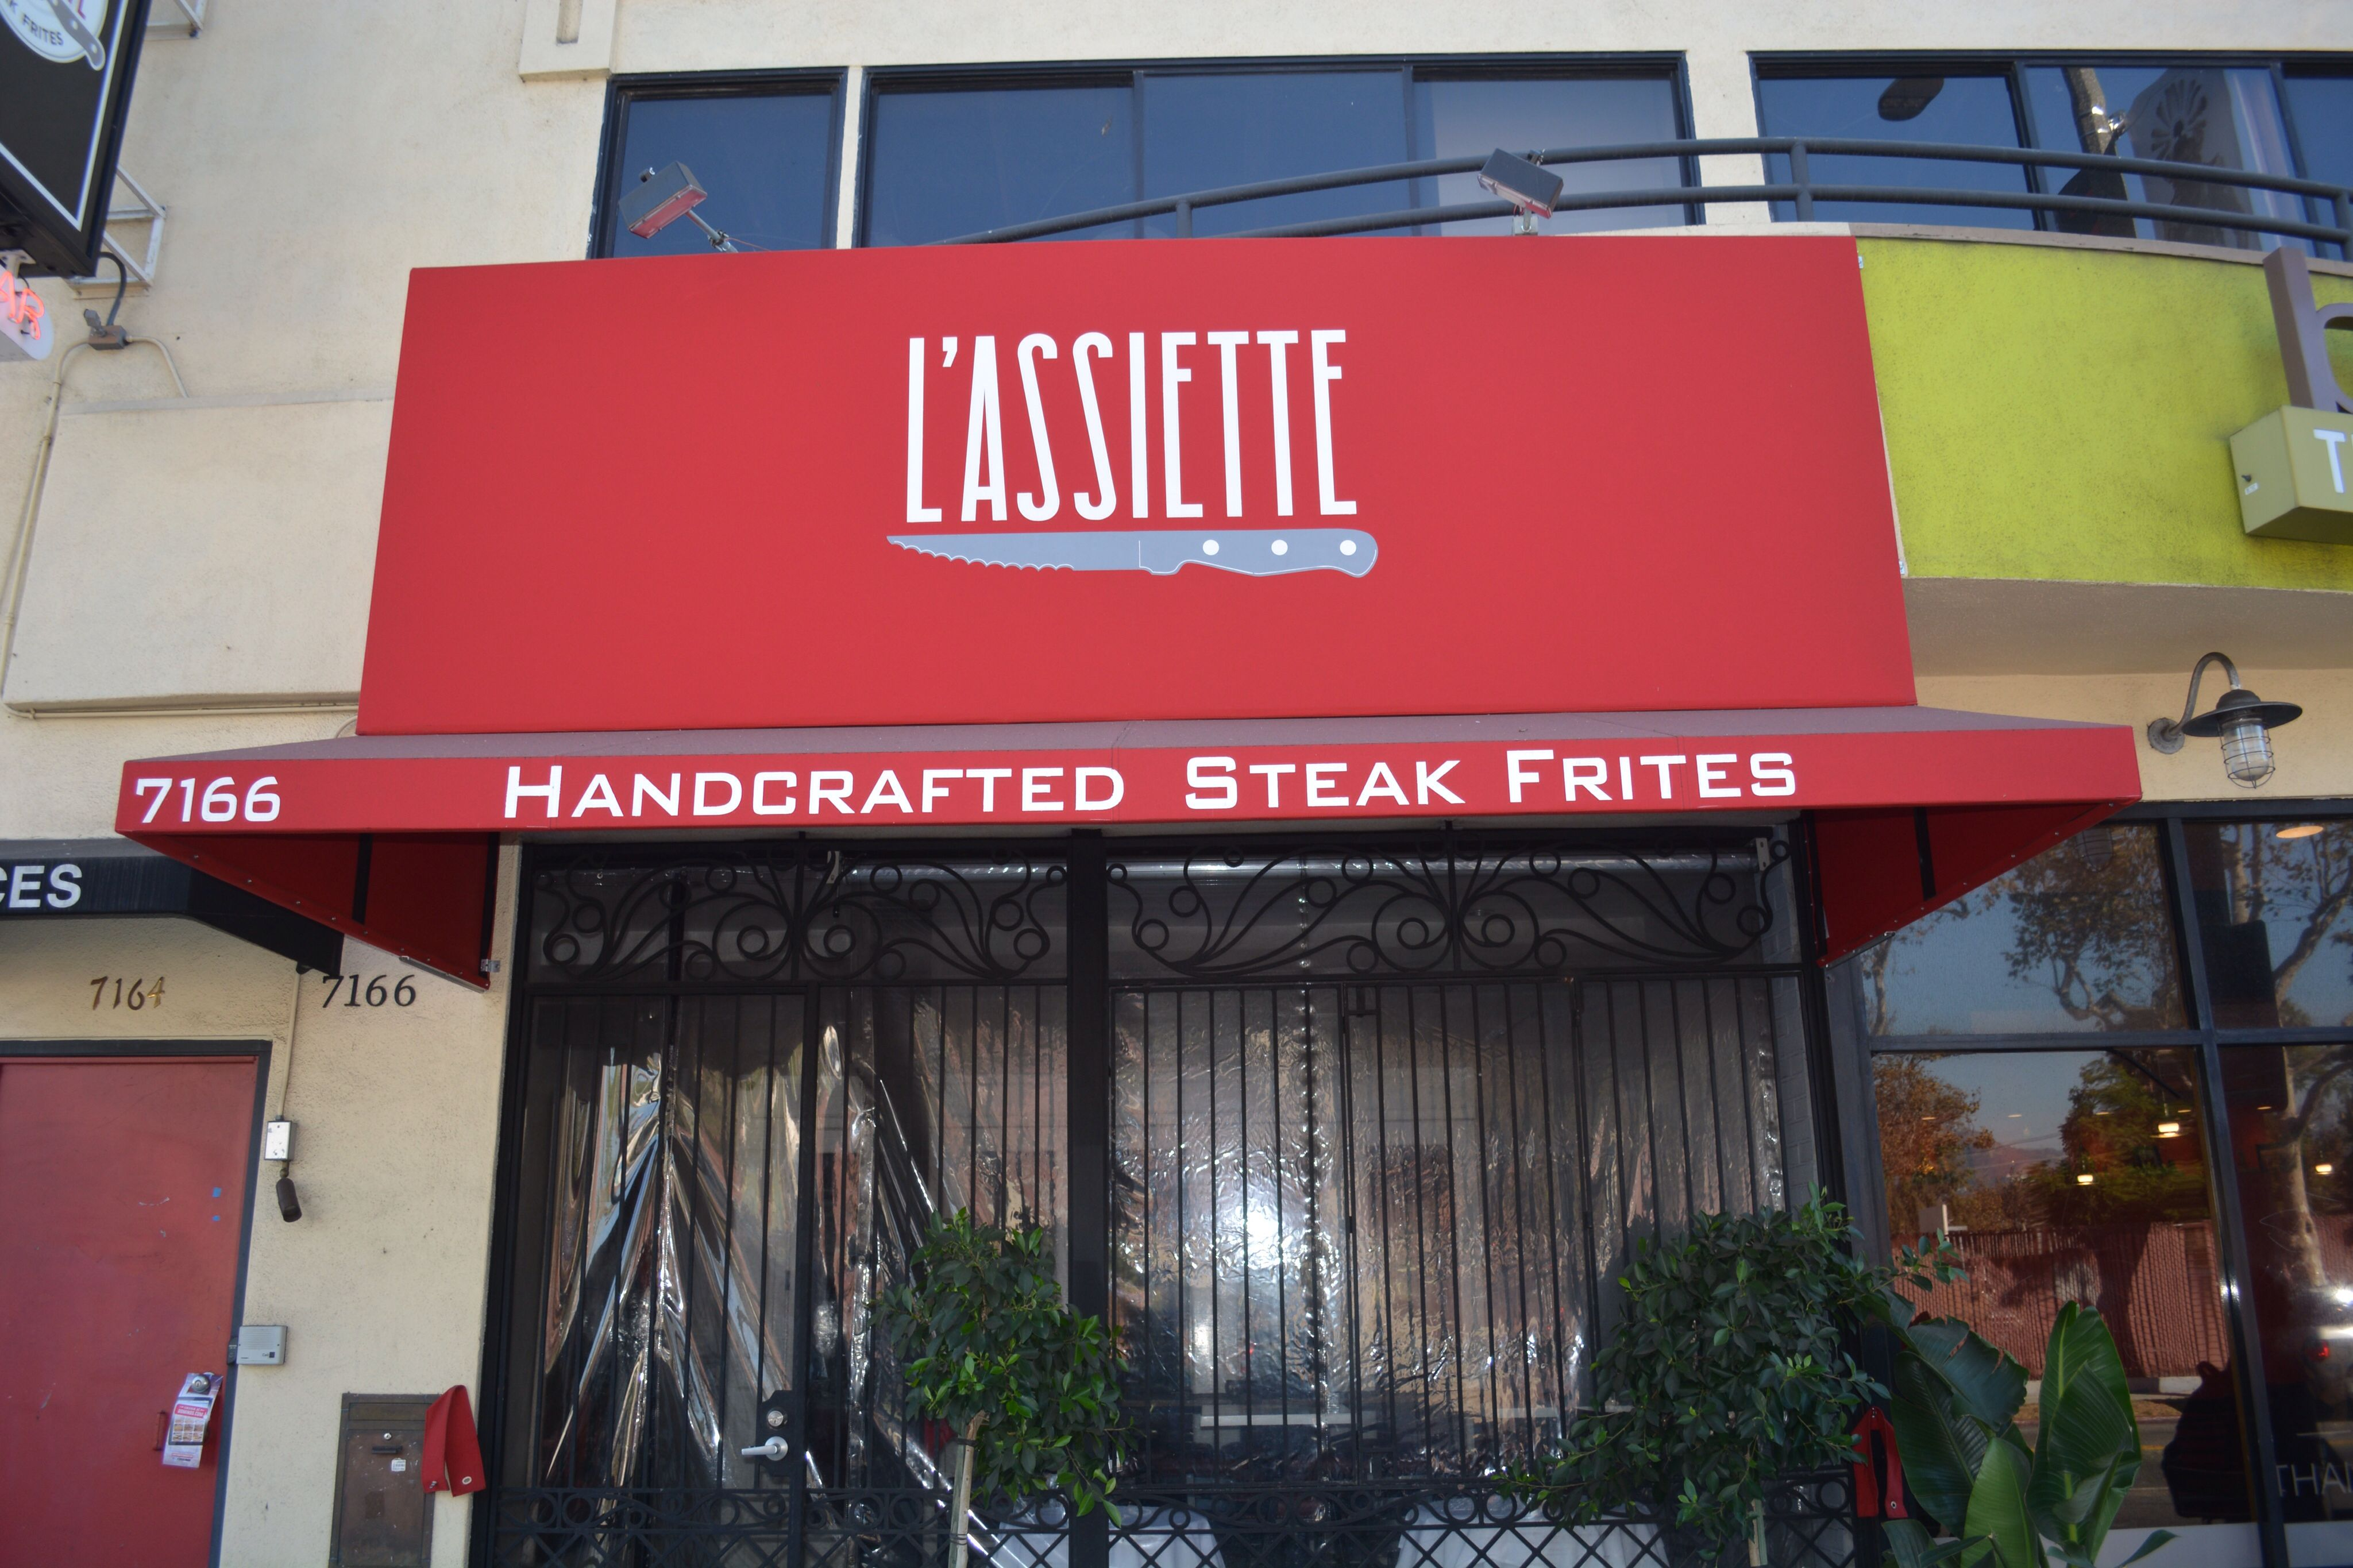 Beautiful Restaurant Awning Storefront Awning Red Logo Artwork Graphics Canopy Interiordesign Awnings Commercial Signs Outdoor Fabric Exterior Design